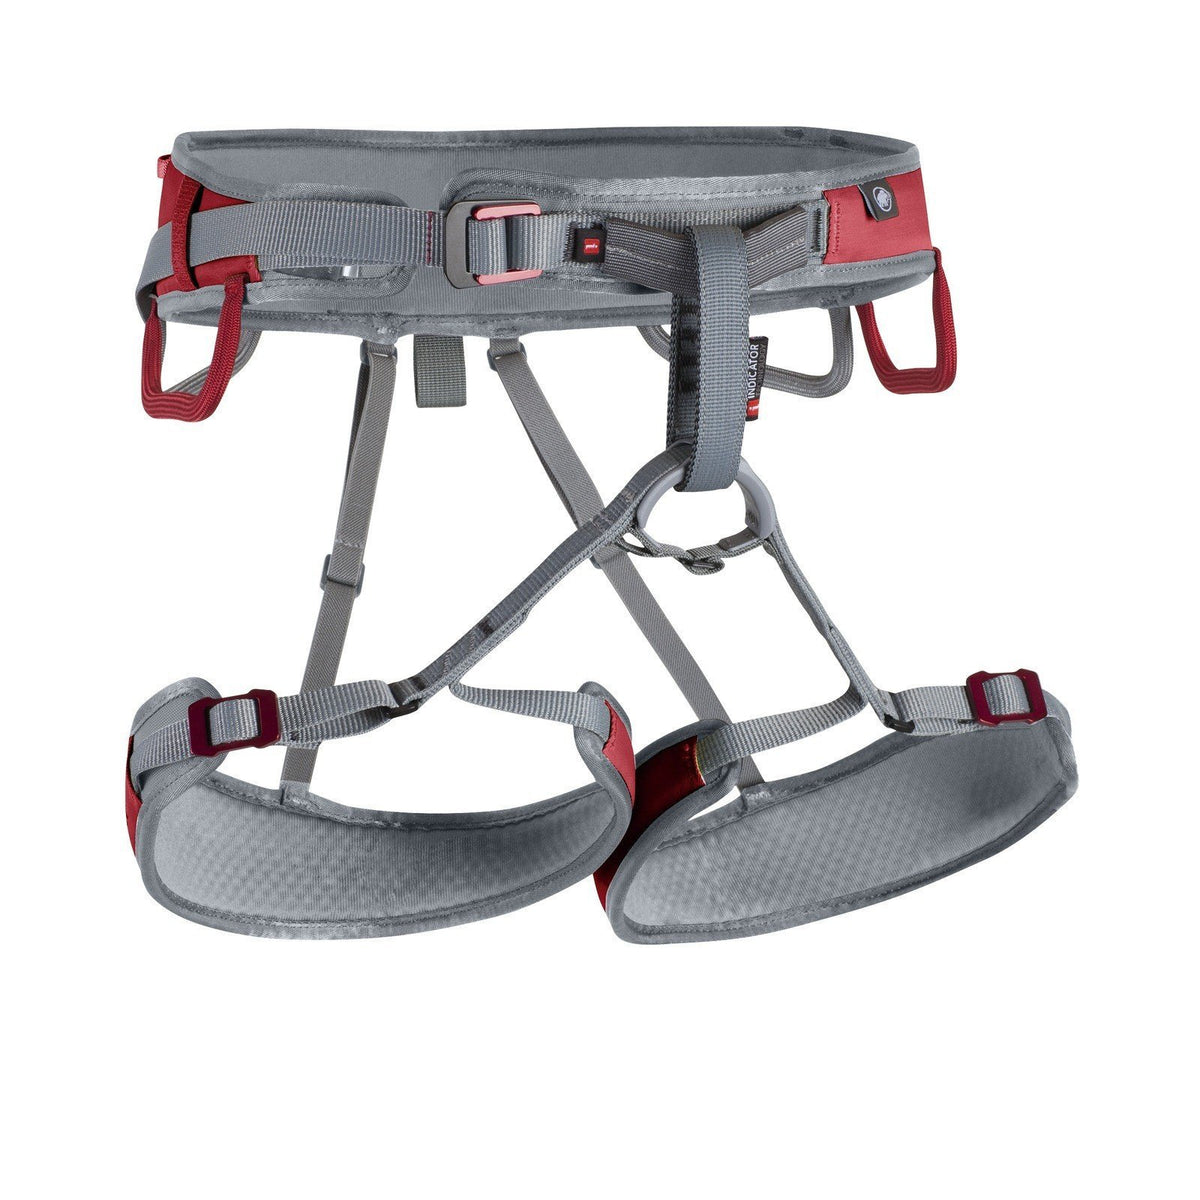 Mammut Ophir Speedfit Harness, front view, in grey and red colours